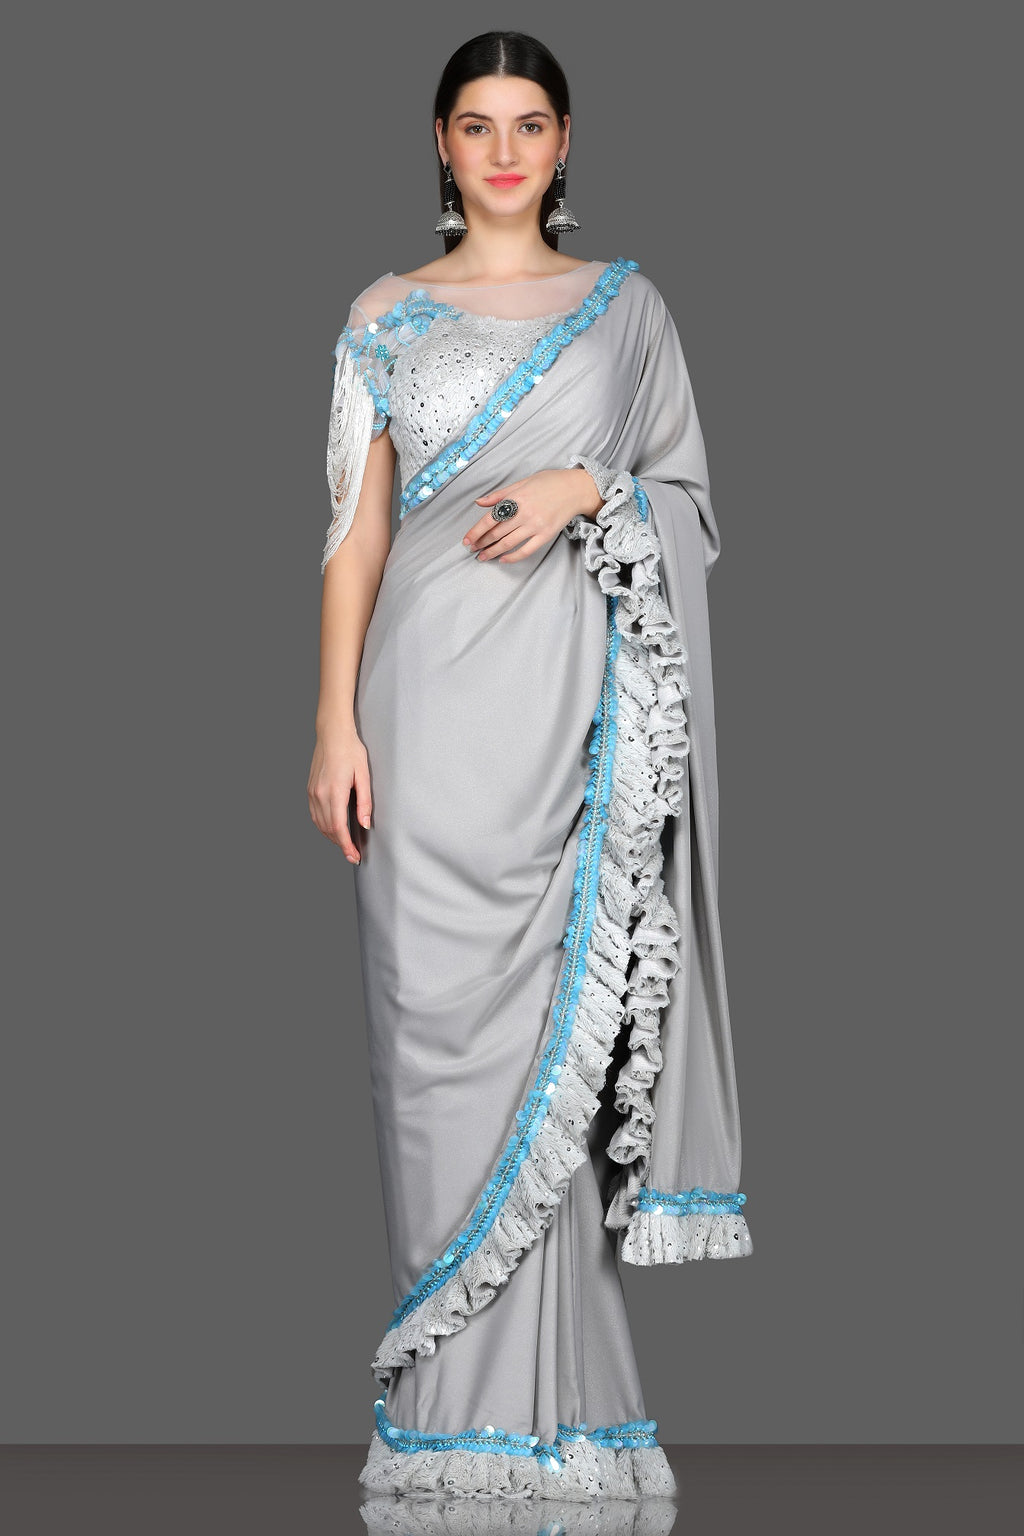 Shop stunning light grey designer ruffle saree online in USA with embroidered sheer saree blouse. Make a fashion statement at weddings with stunning designer sarees, embroidered sarees with blouse, wedding sarees, handloom sarees from Pure Elegance Indian fashion store in USA.-full view